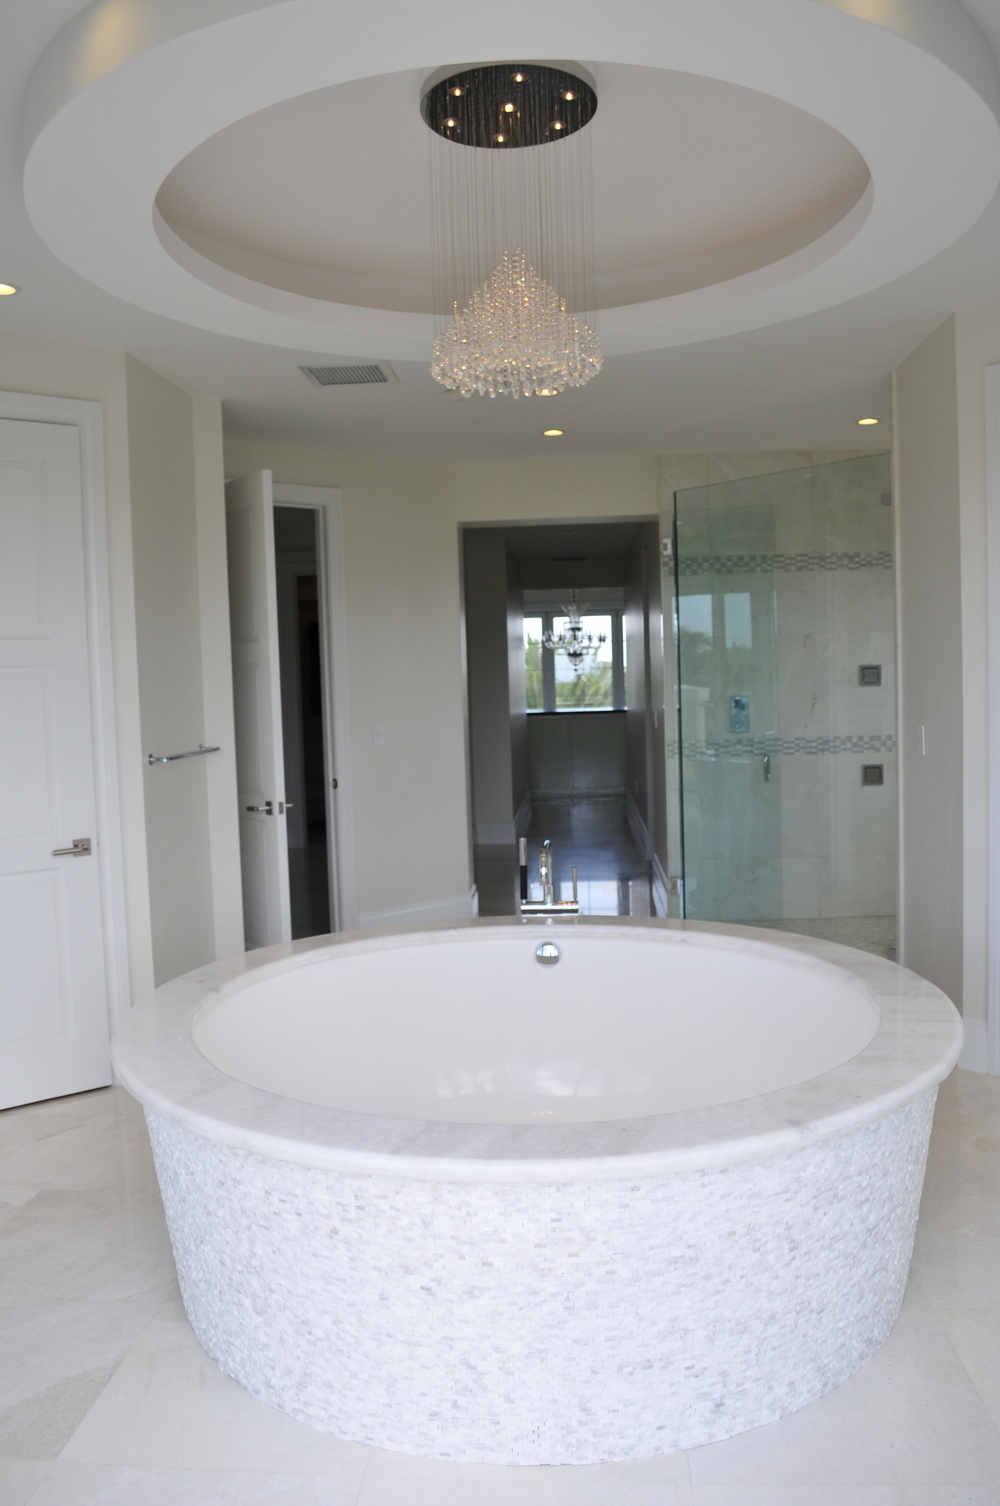 We made a custom bathtub so we could match the circumference of the traced ceiling above finished with a custom crystal chandelier..JPG